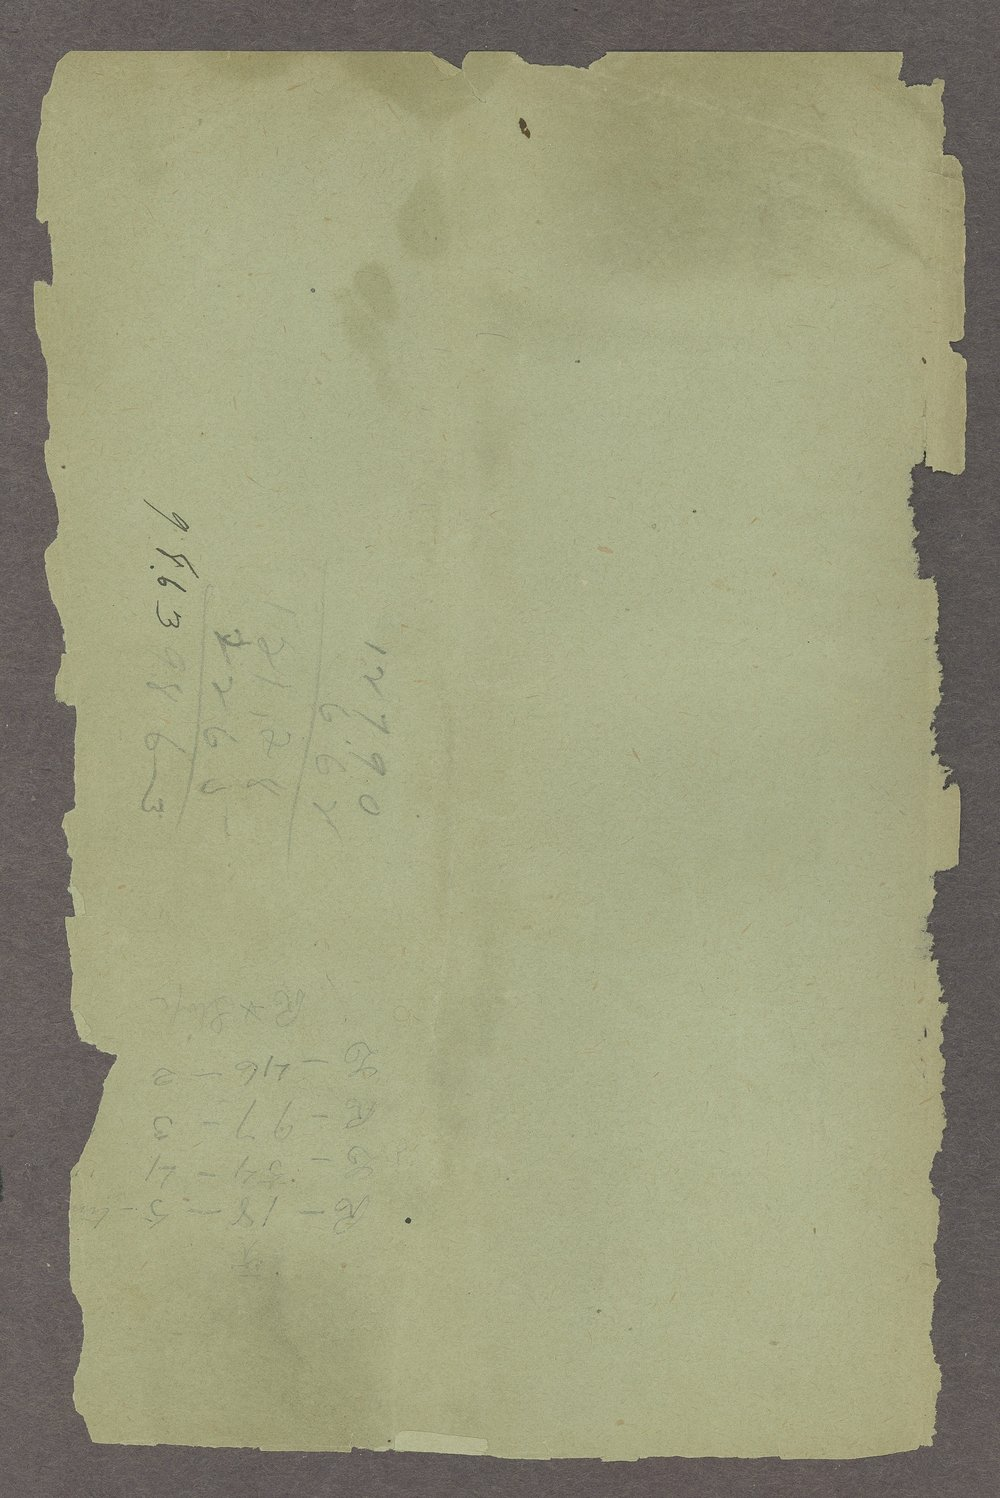 Biennial report of the State Reform School, 1892 - Back Cover